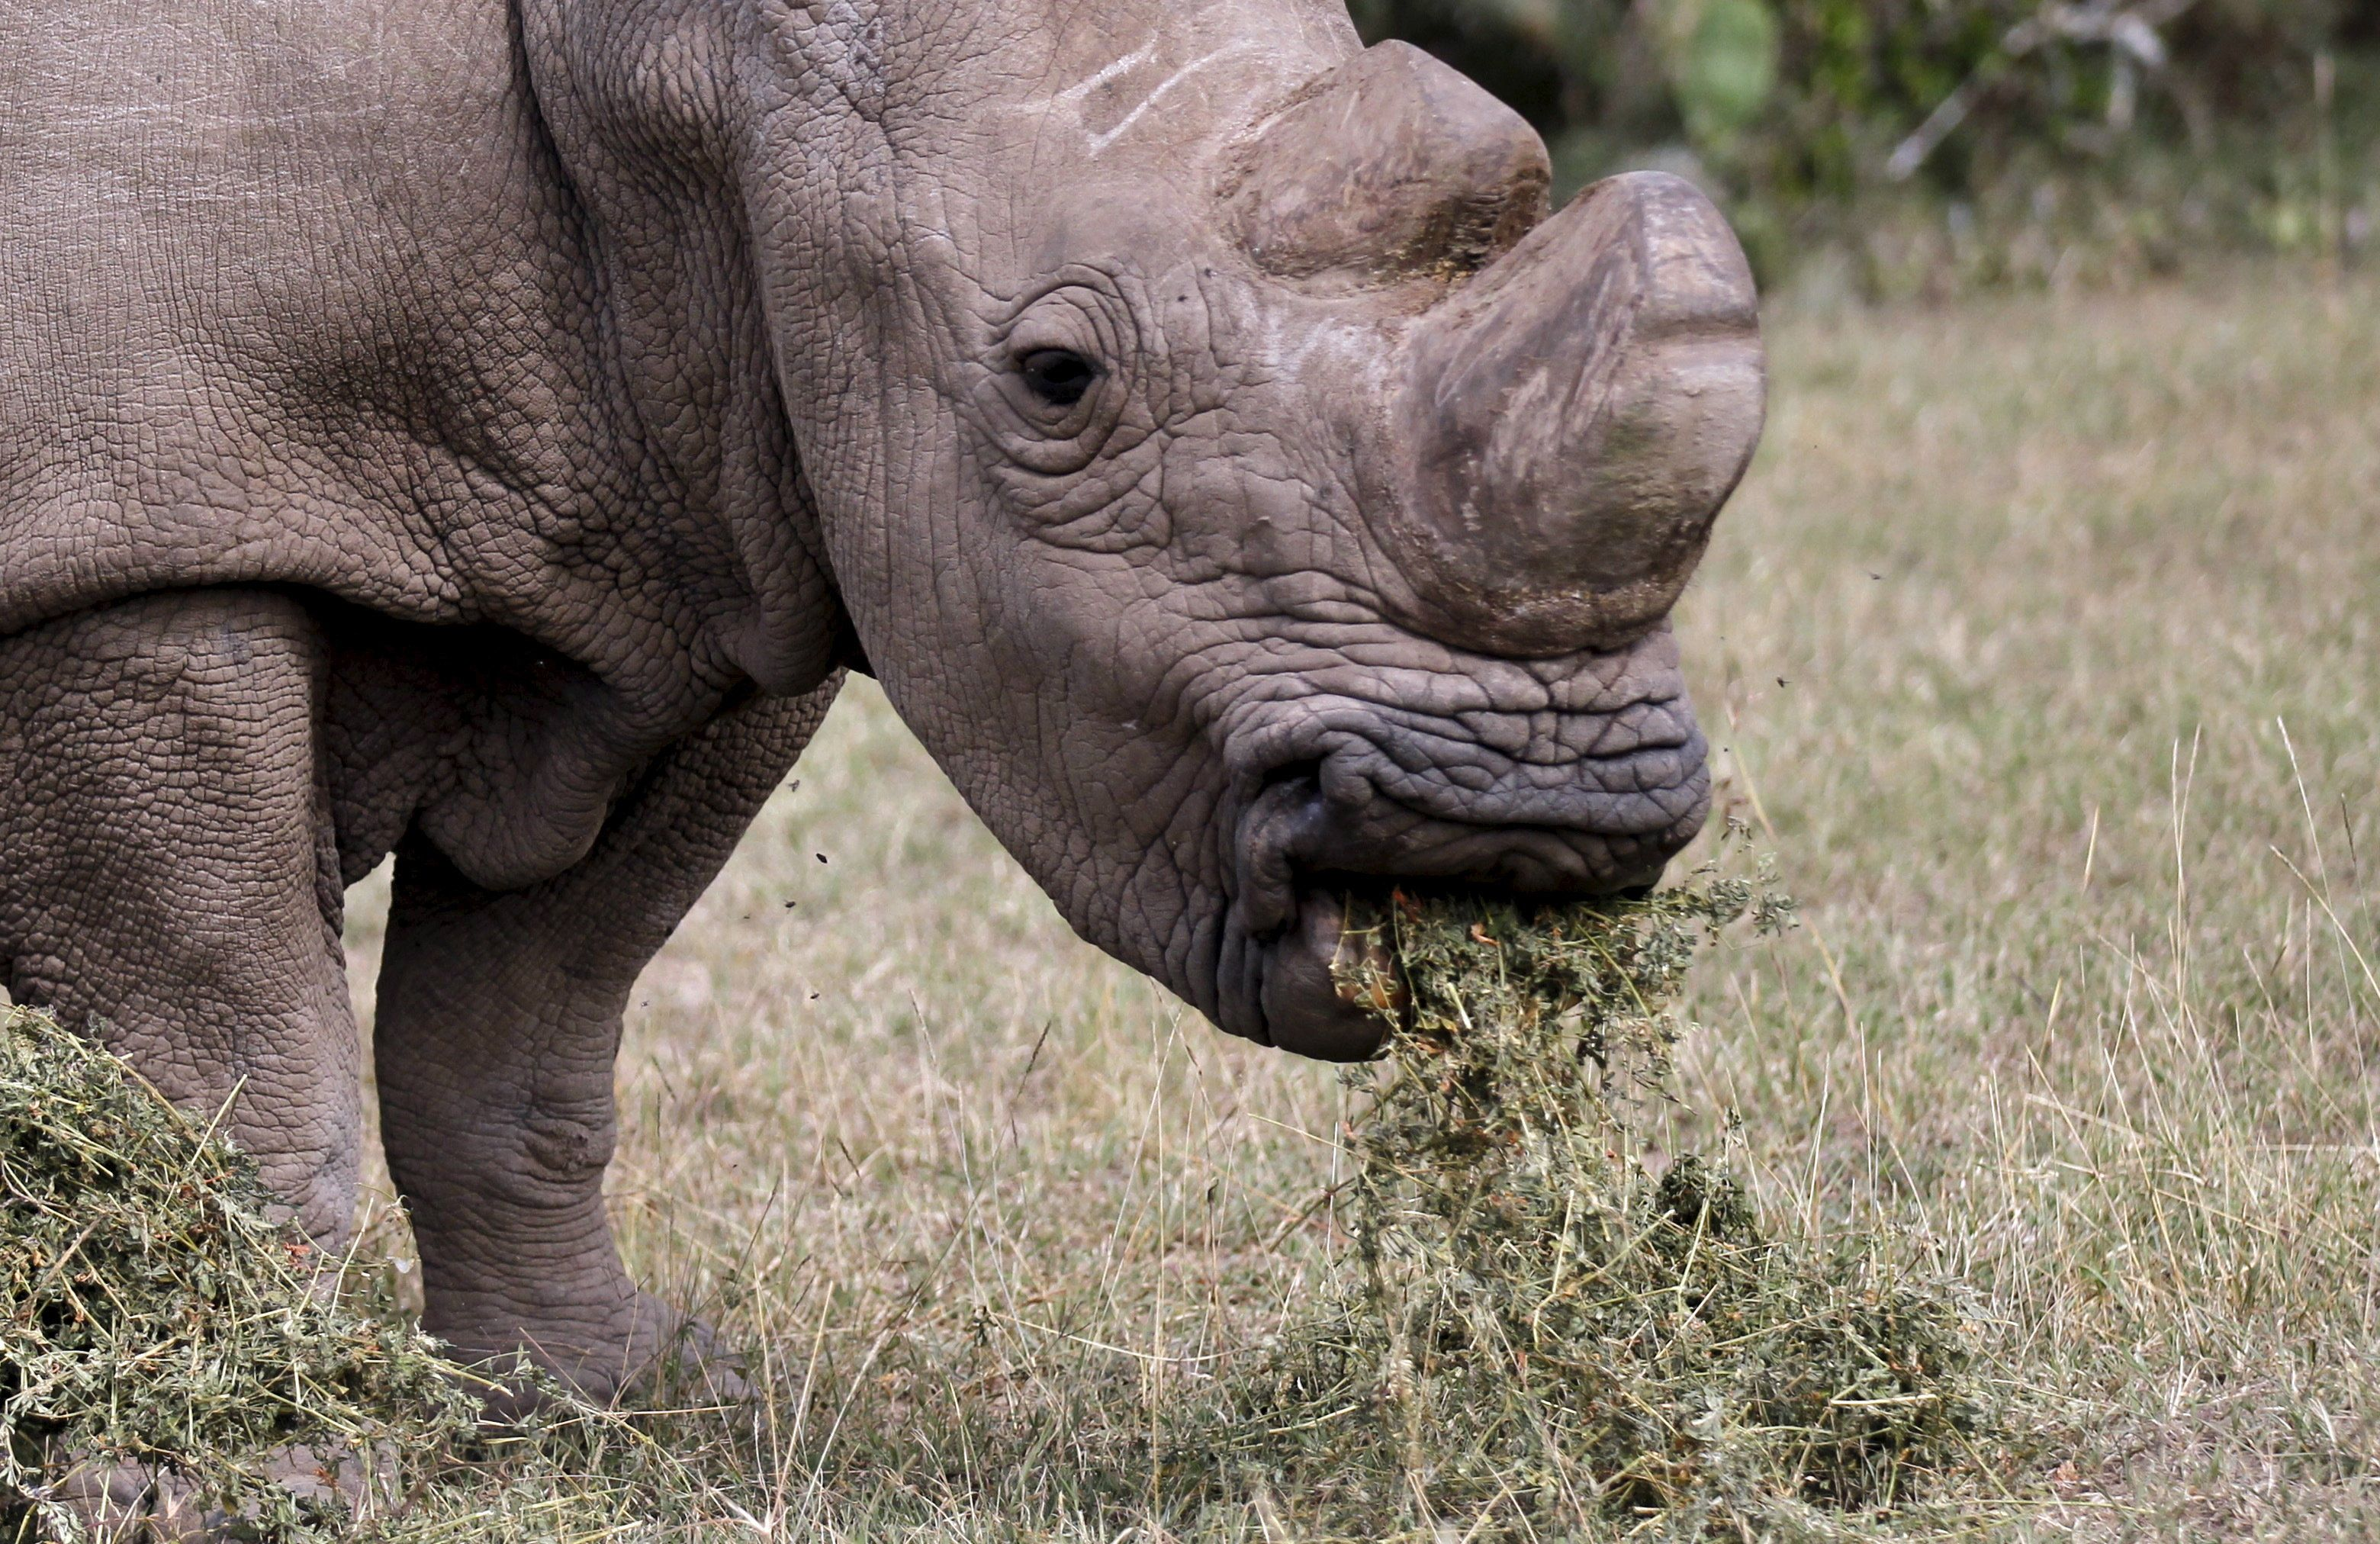 Sudan died at the age of 45, which is considered elderly for a rhino.